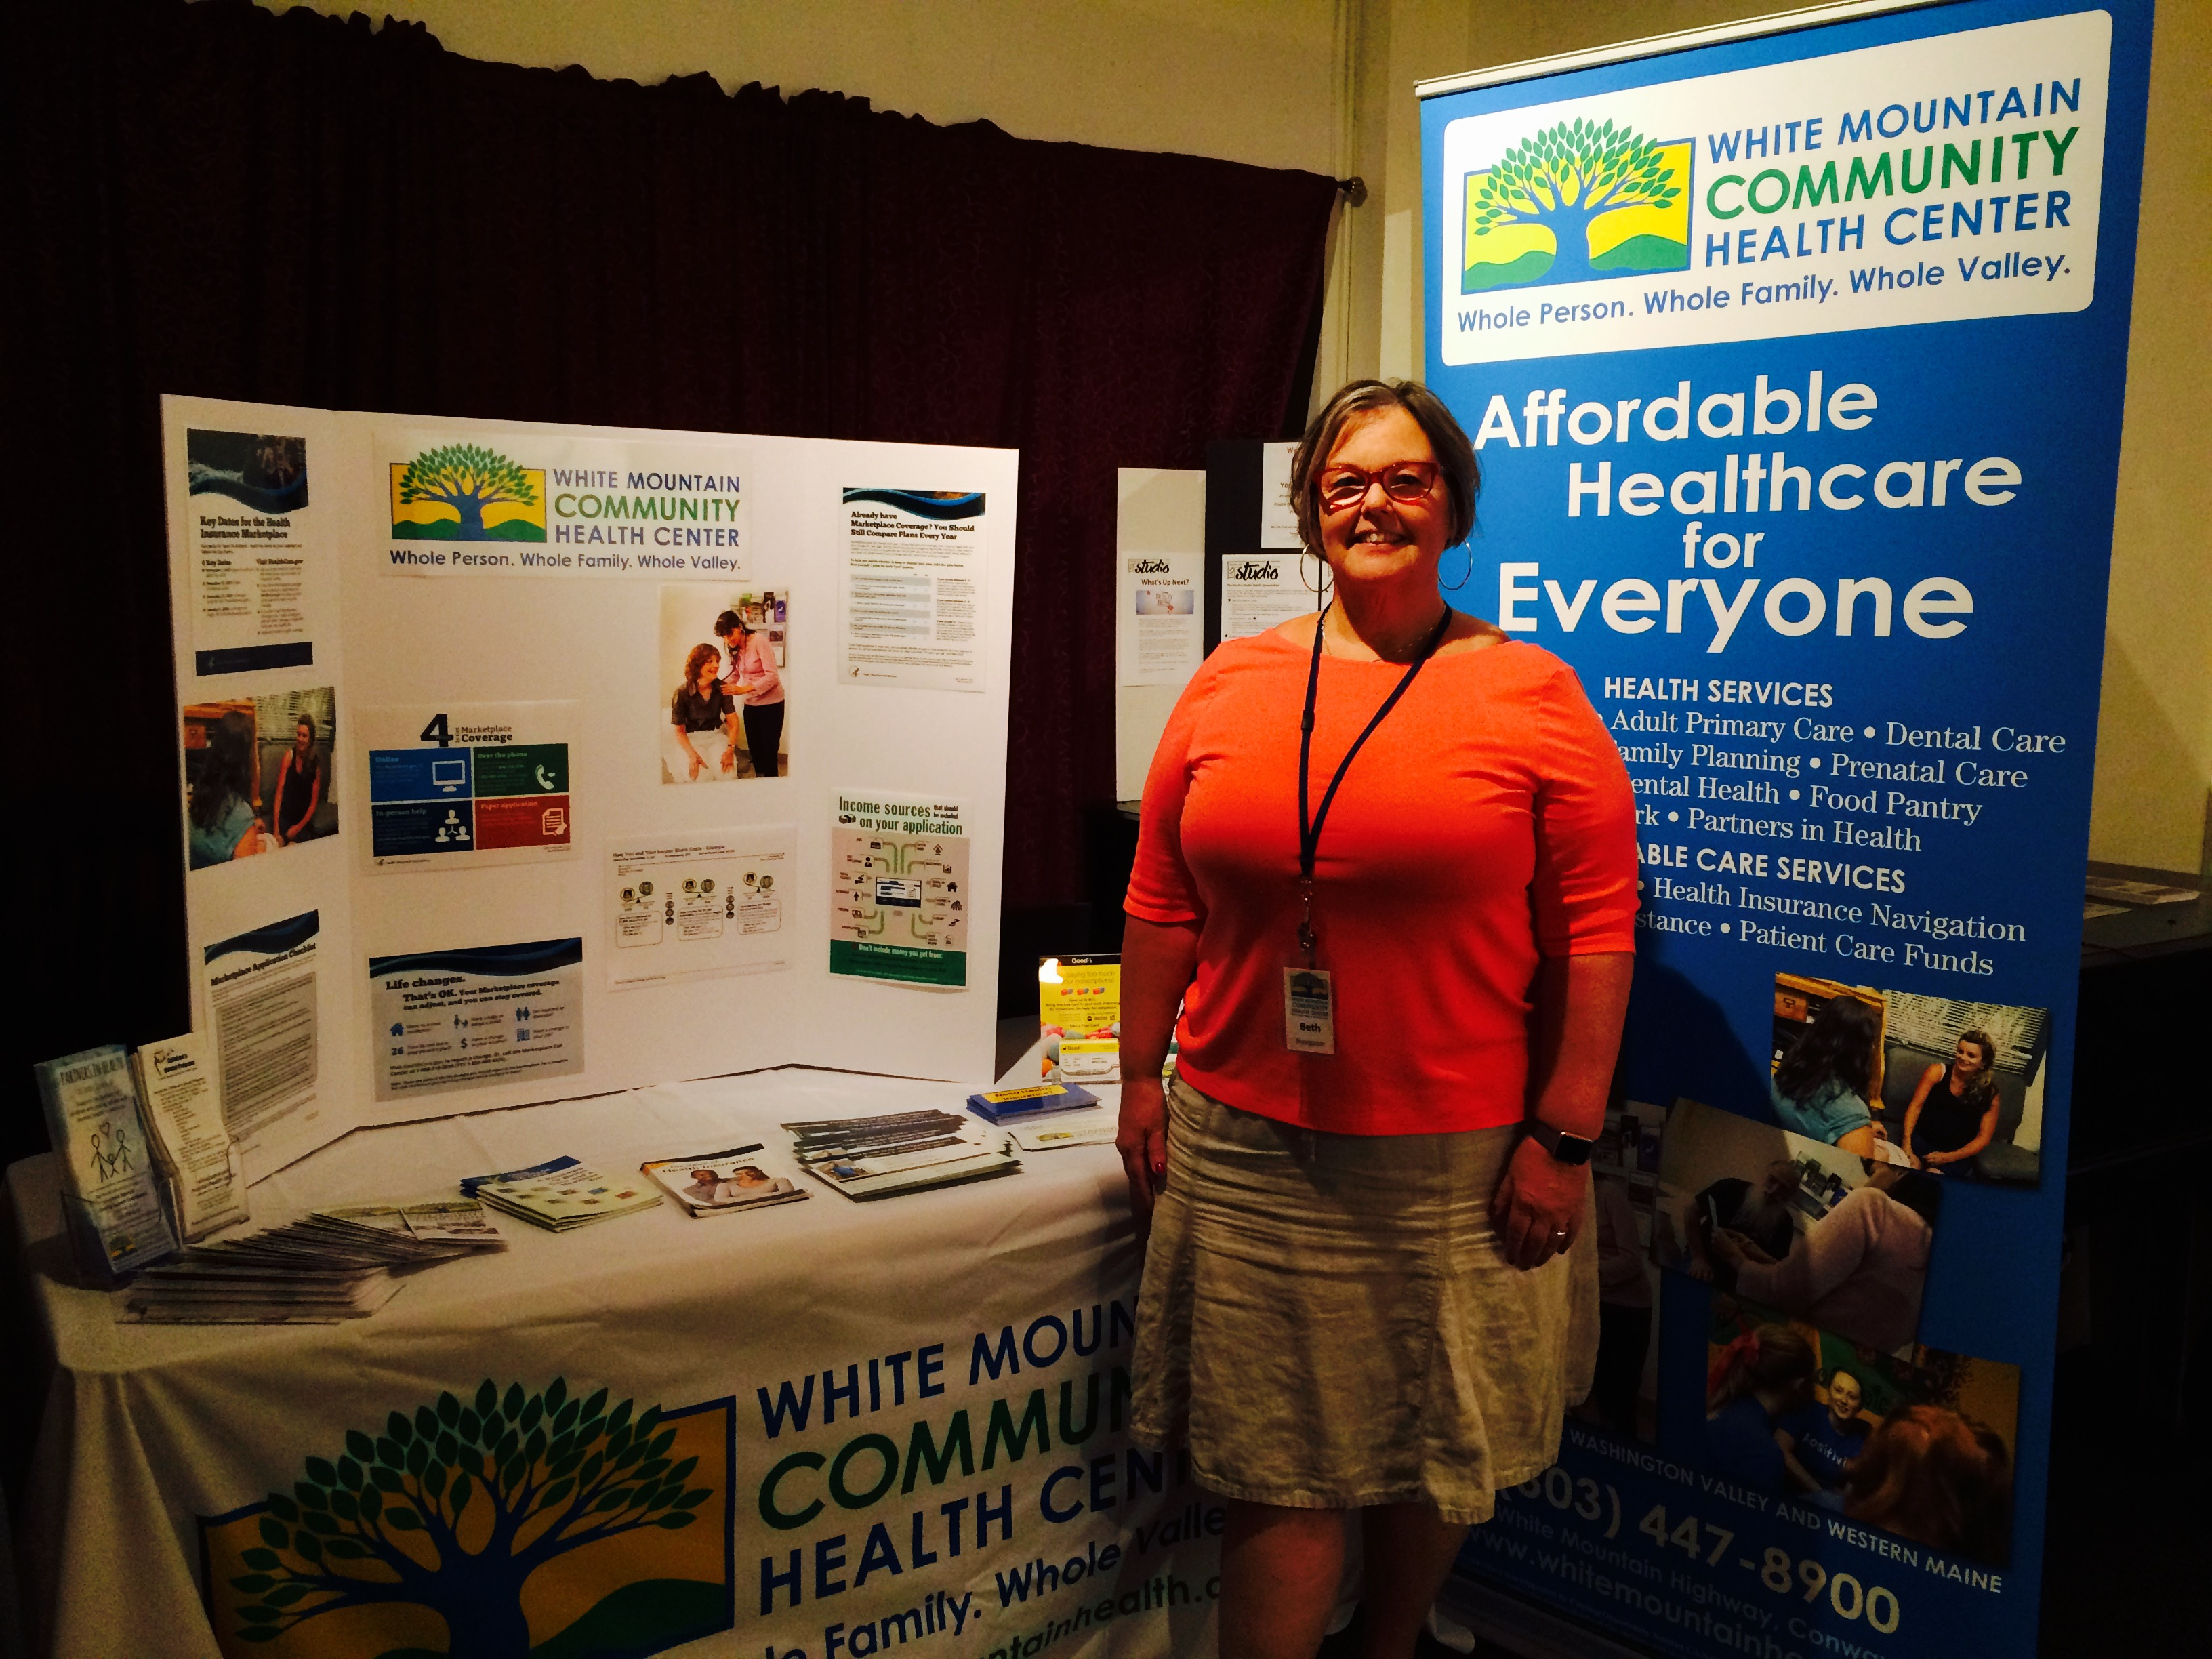 http://whitemountainhealth.org/uploads/images/content_pictures/Beth with sign.jpg